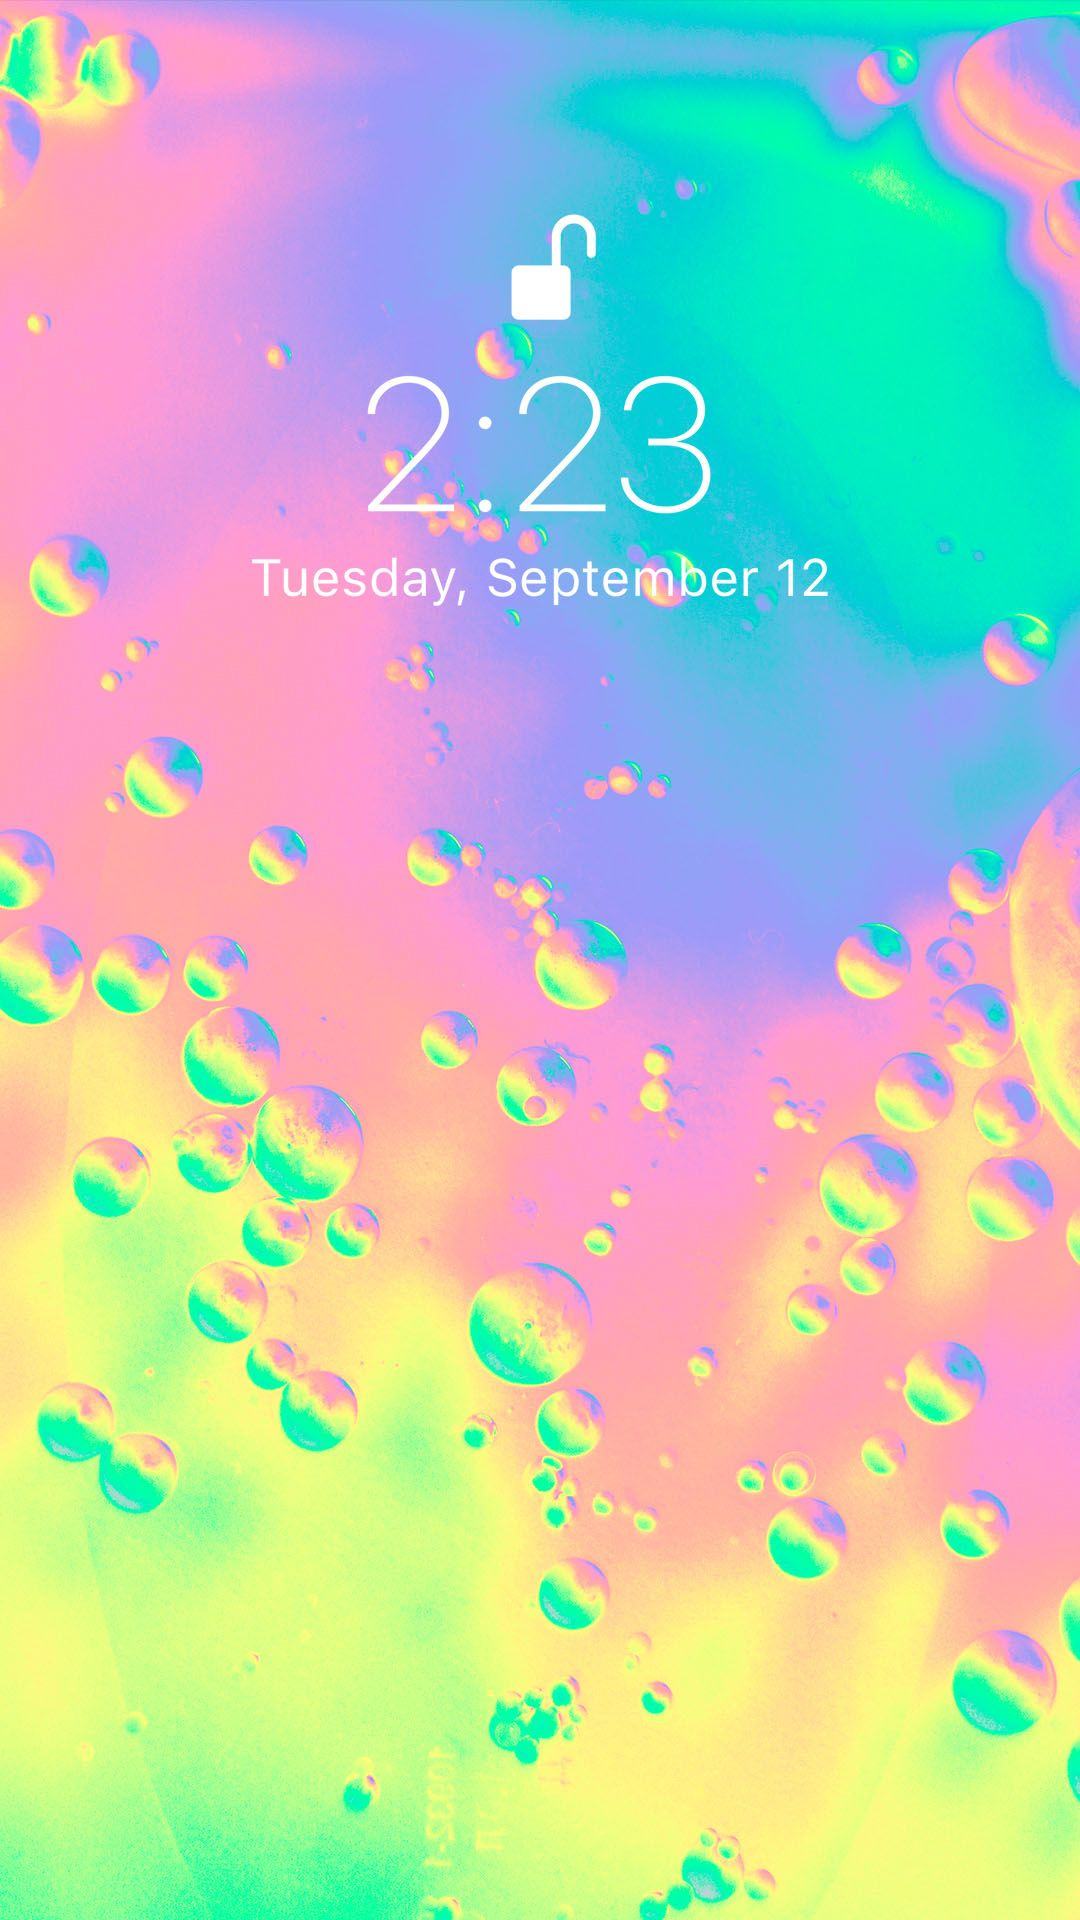 Pin on Aesthetic wallpapers from Vibe App